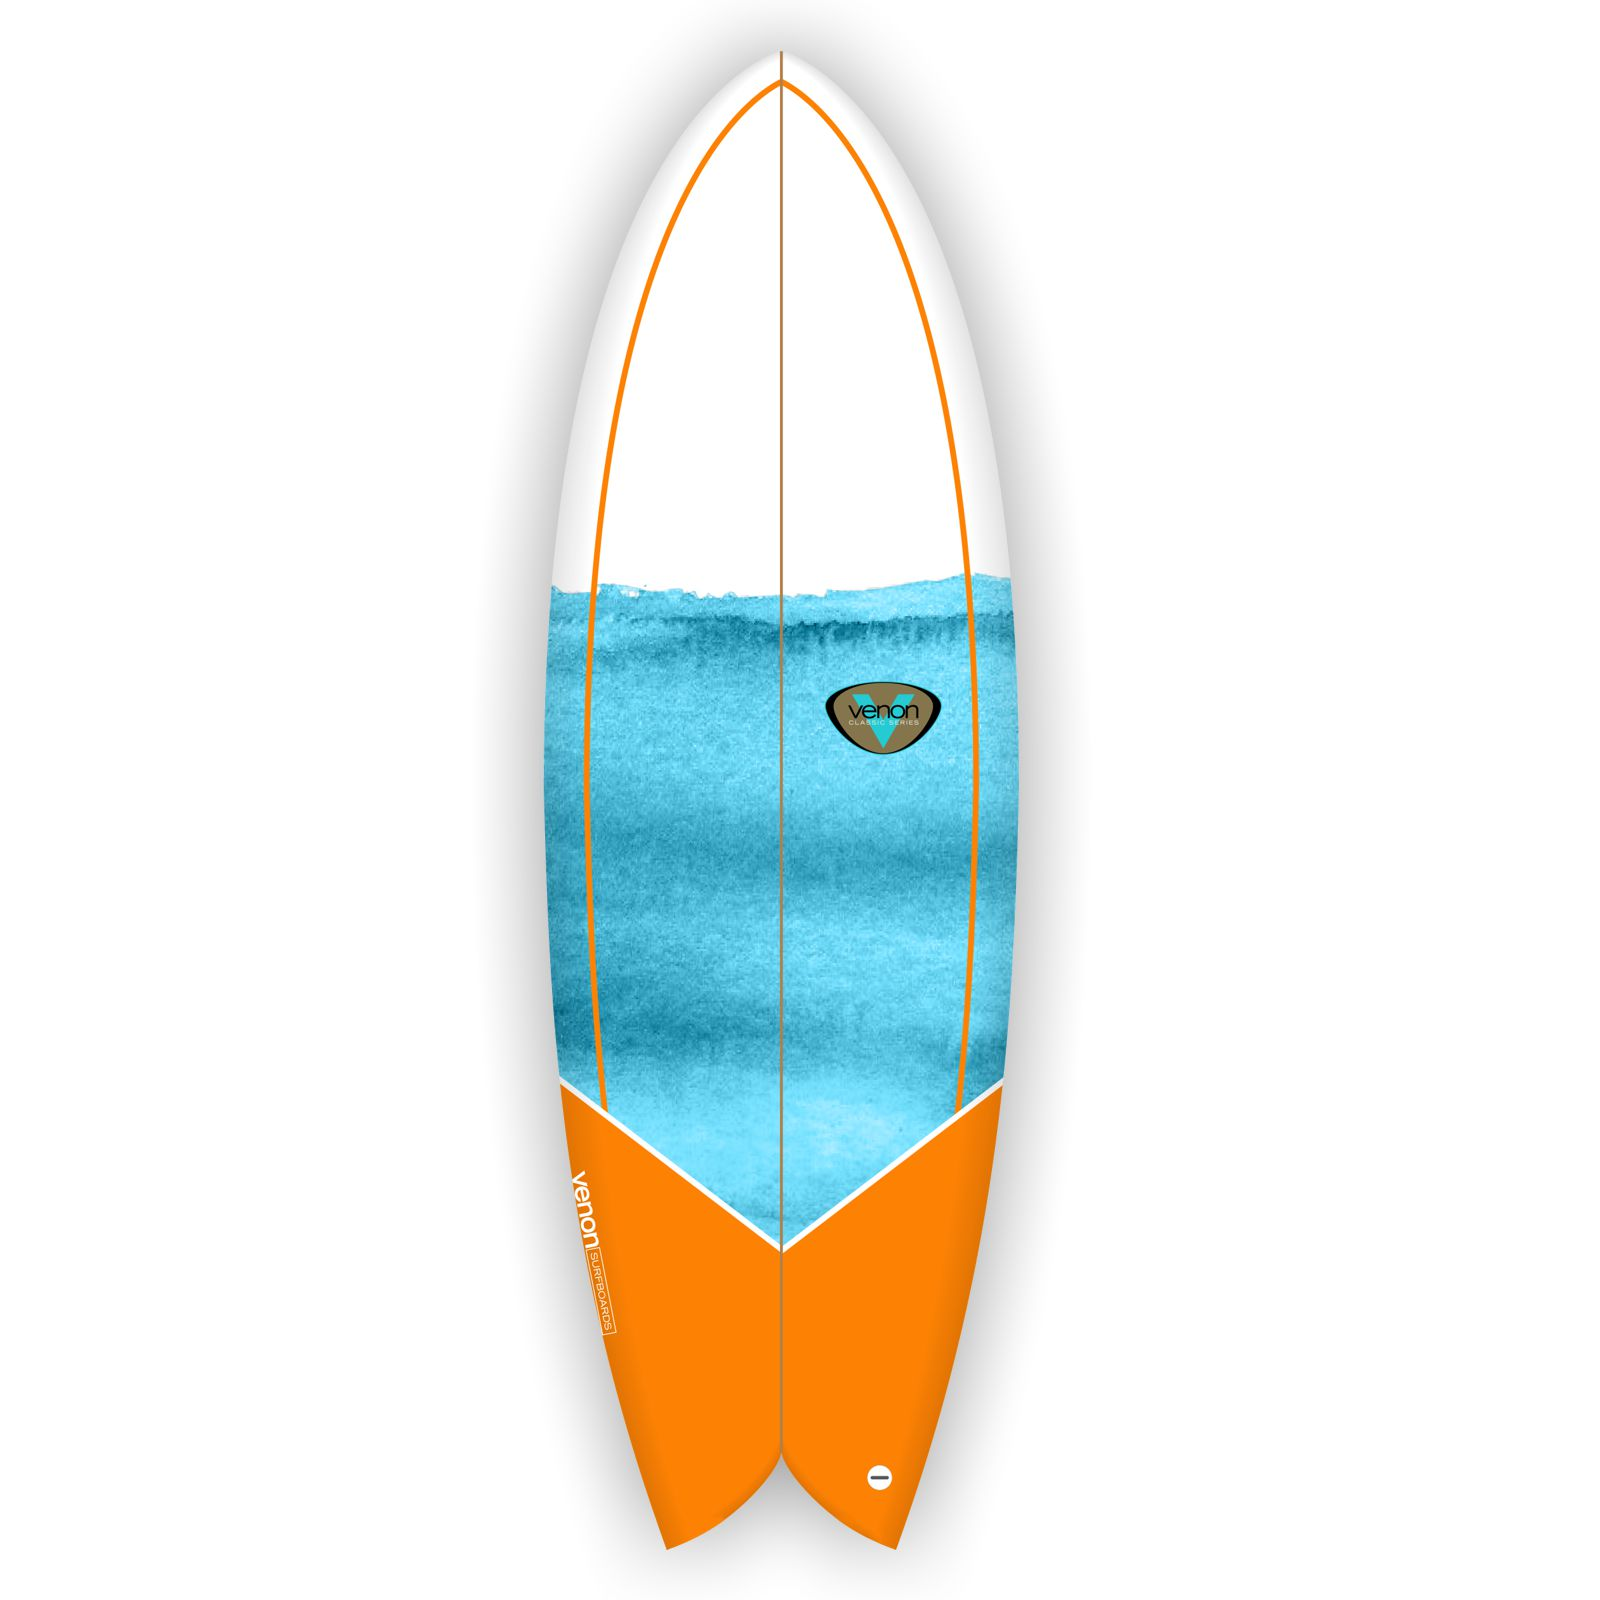 Surfboard VENON Node 5.11 Twinfin Retro Fish